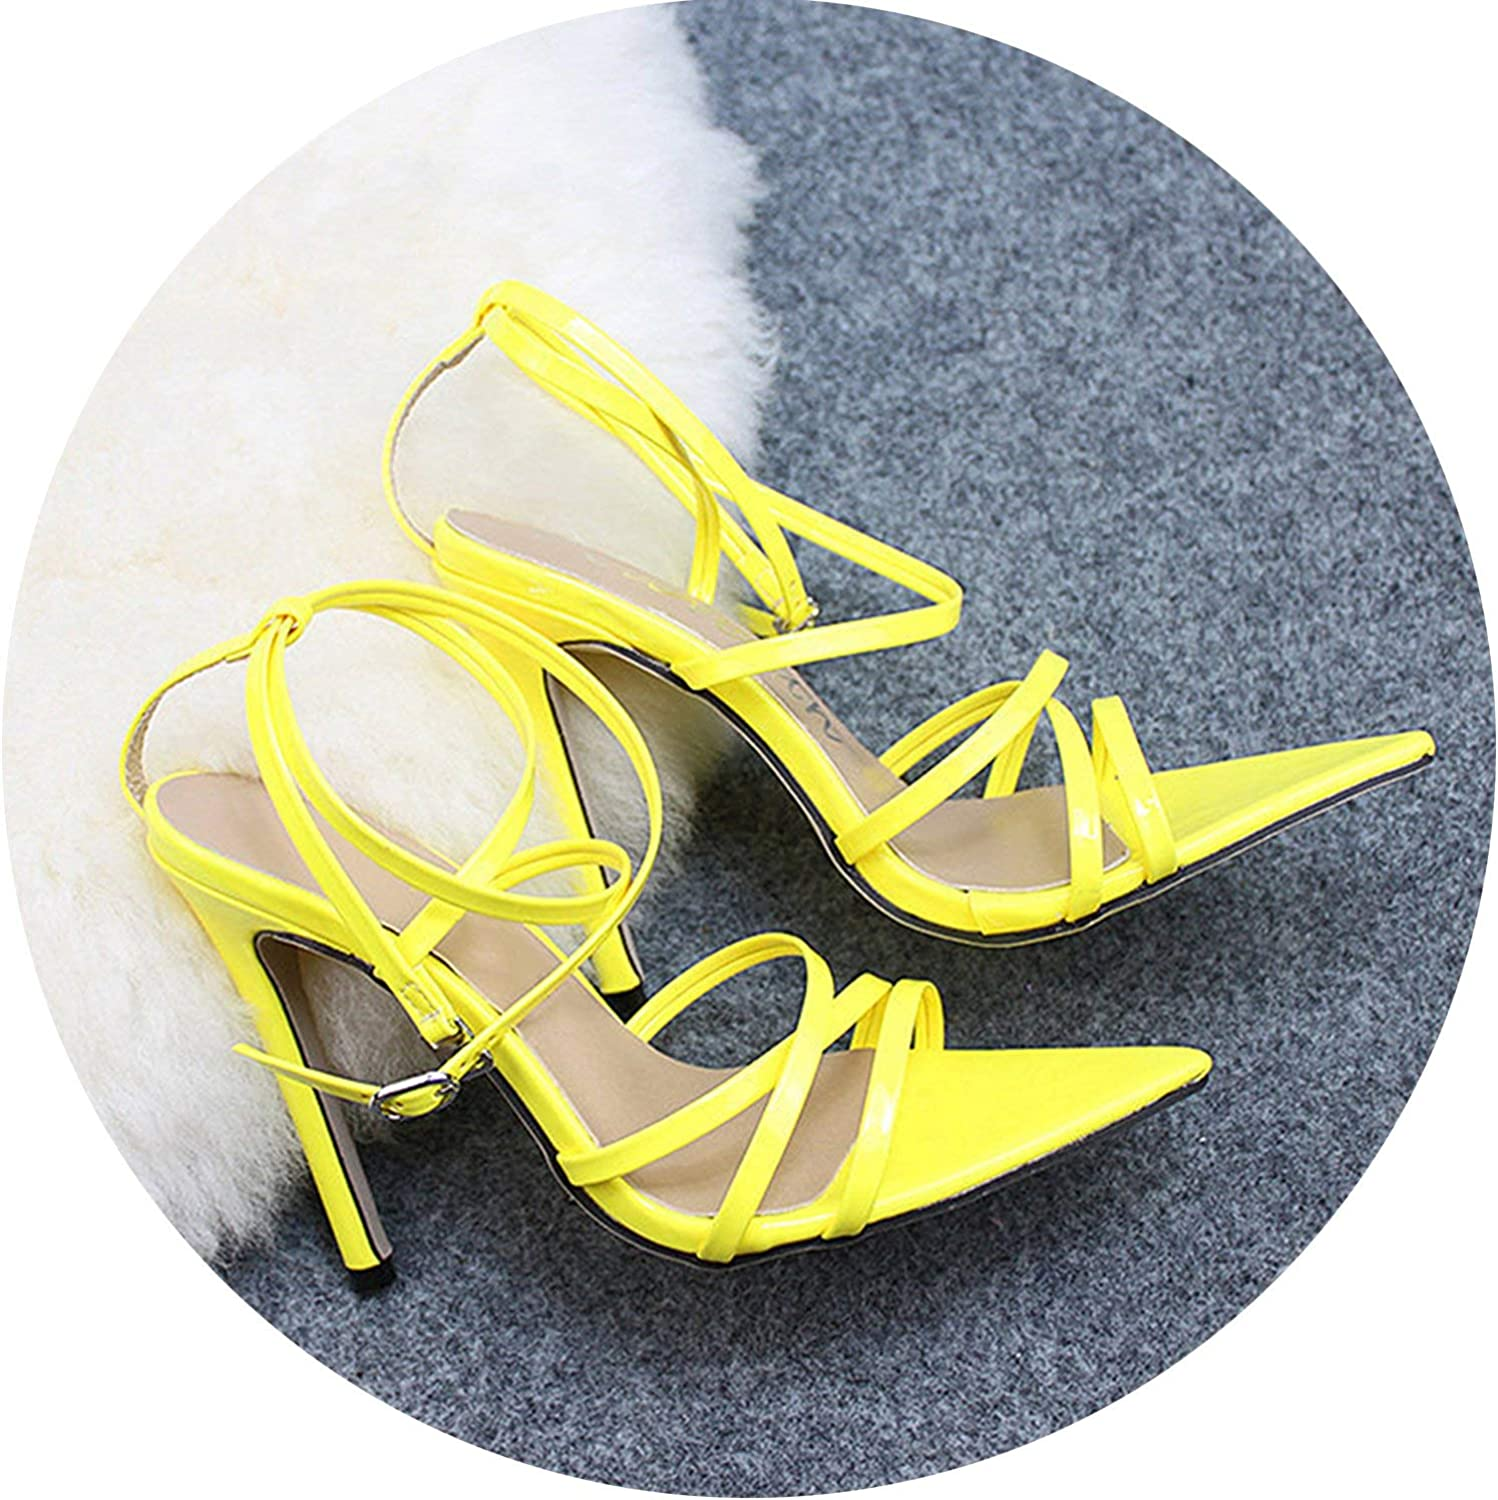 Coolemon Super High 11.5CM Thin Heels Women Pumps Ankle Cross Strap Sandals shoes Woman Ladies Pointed Toe High Heels Dress Party shoes,Yellow,36